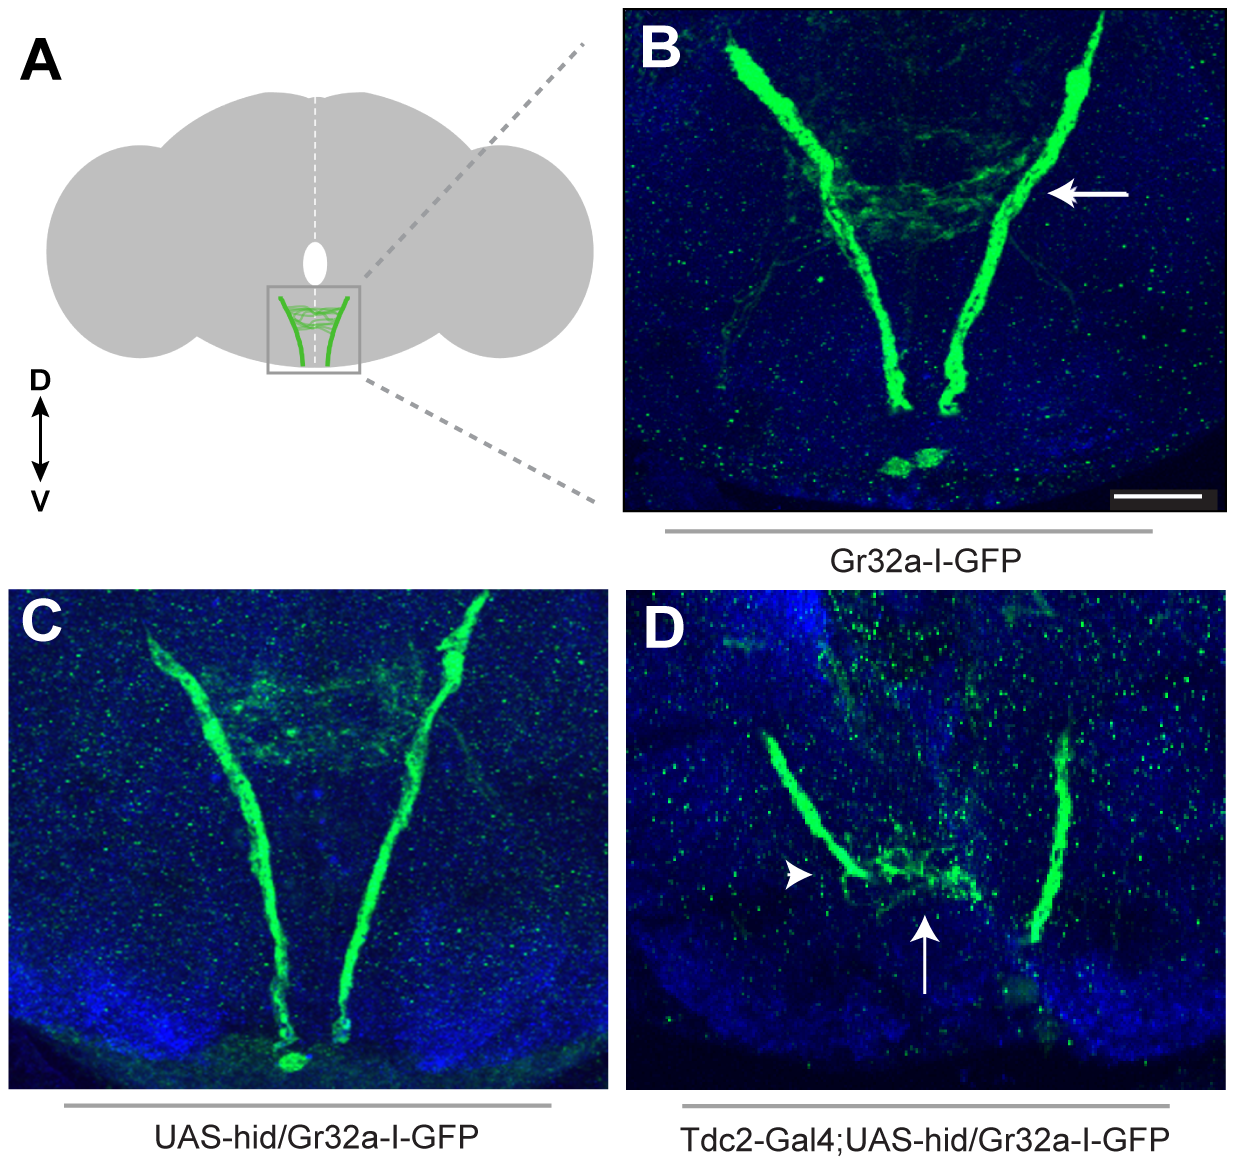 Removing OA neurons significantly alters Gr32a axonal projections.